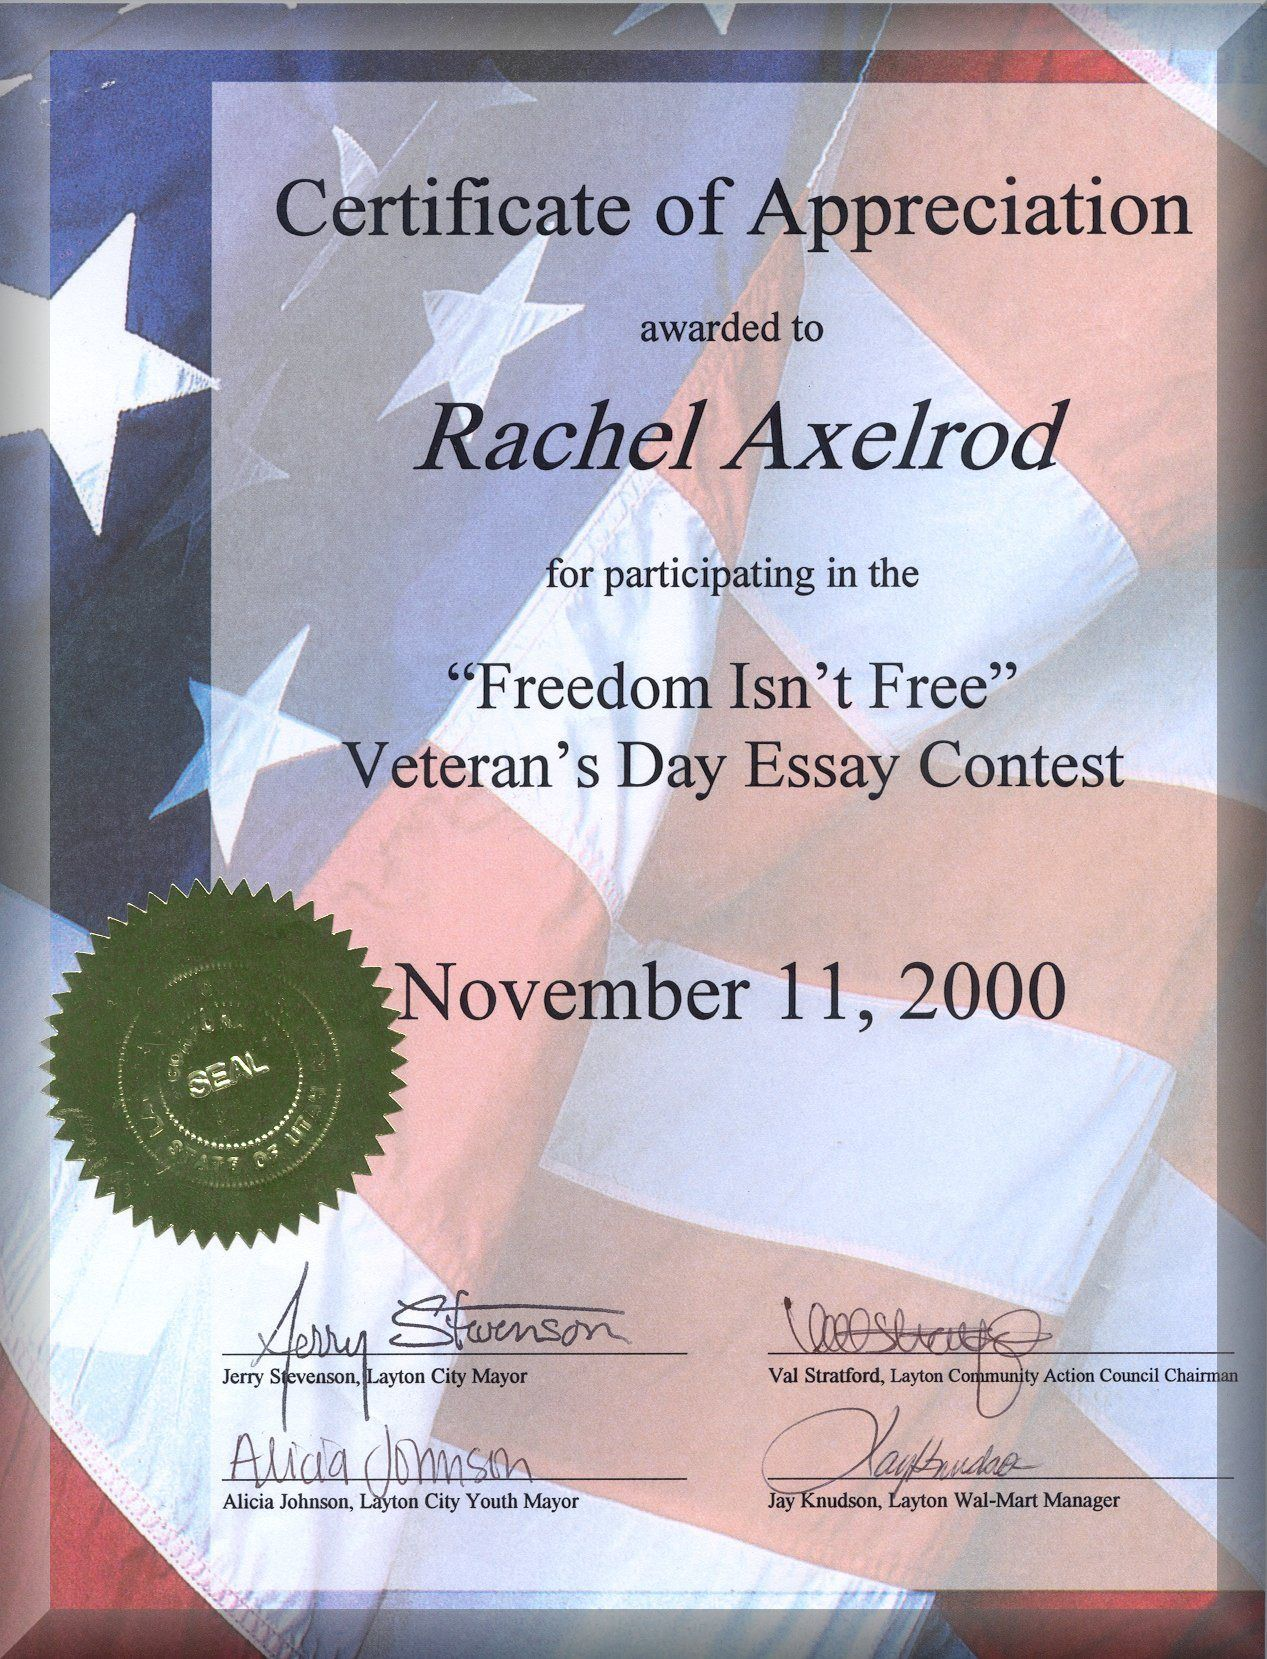 Veteran certificate of appreciation printable related pictures veteran certificate of appreciation printable related pictures award free award certificate templates pictures alramifo Image collections